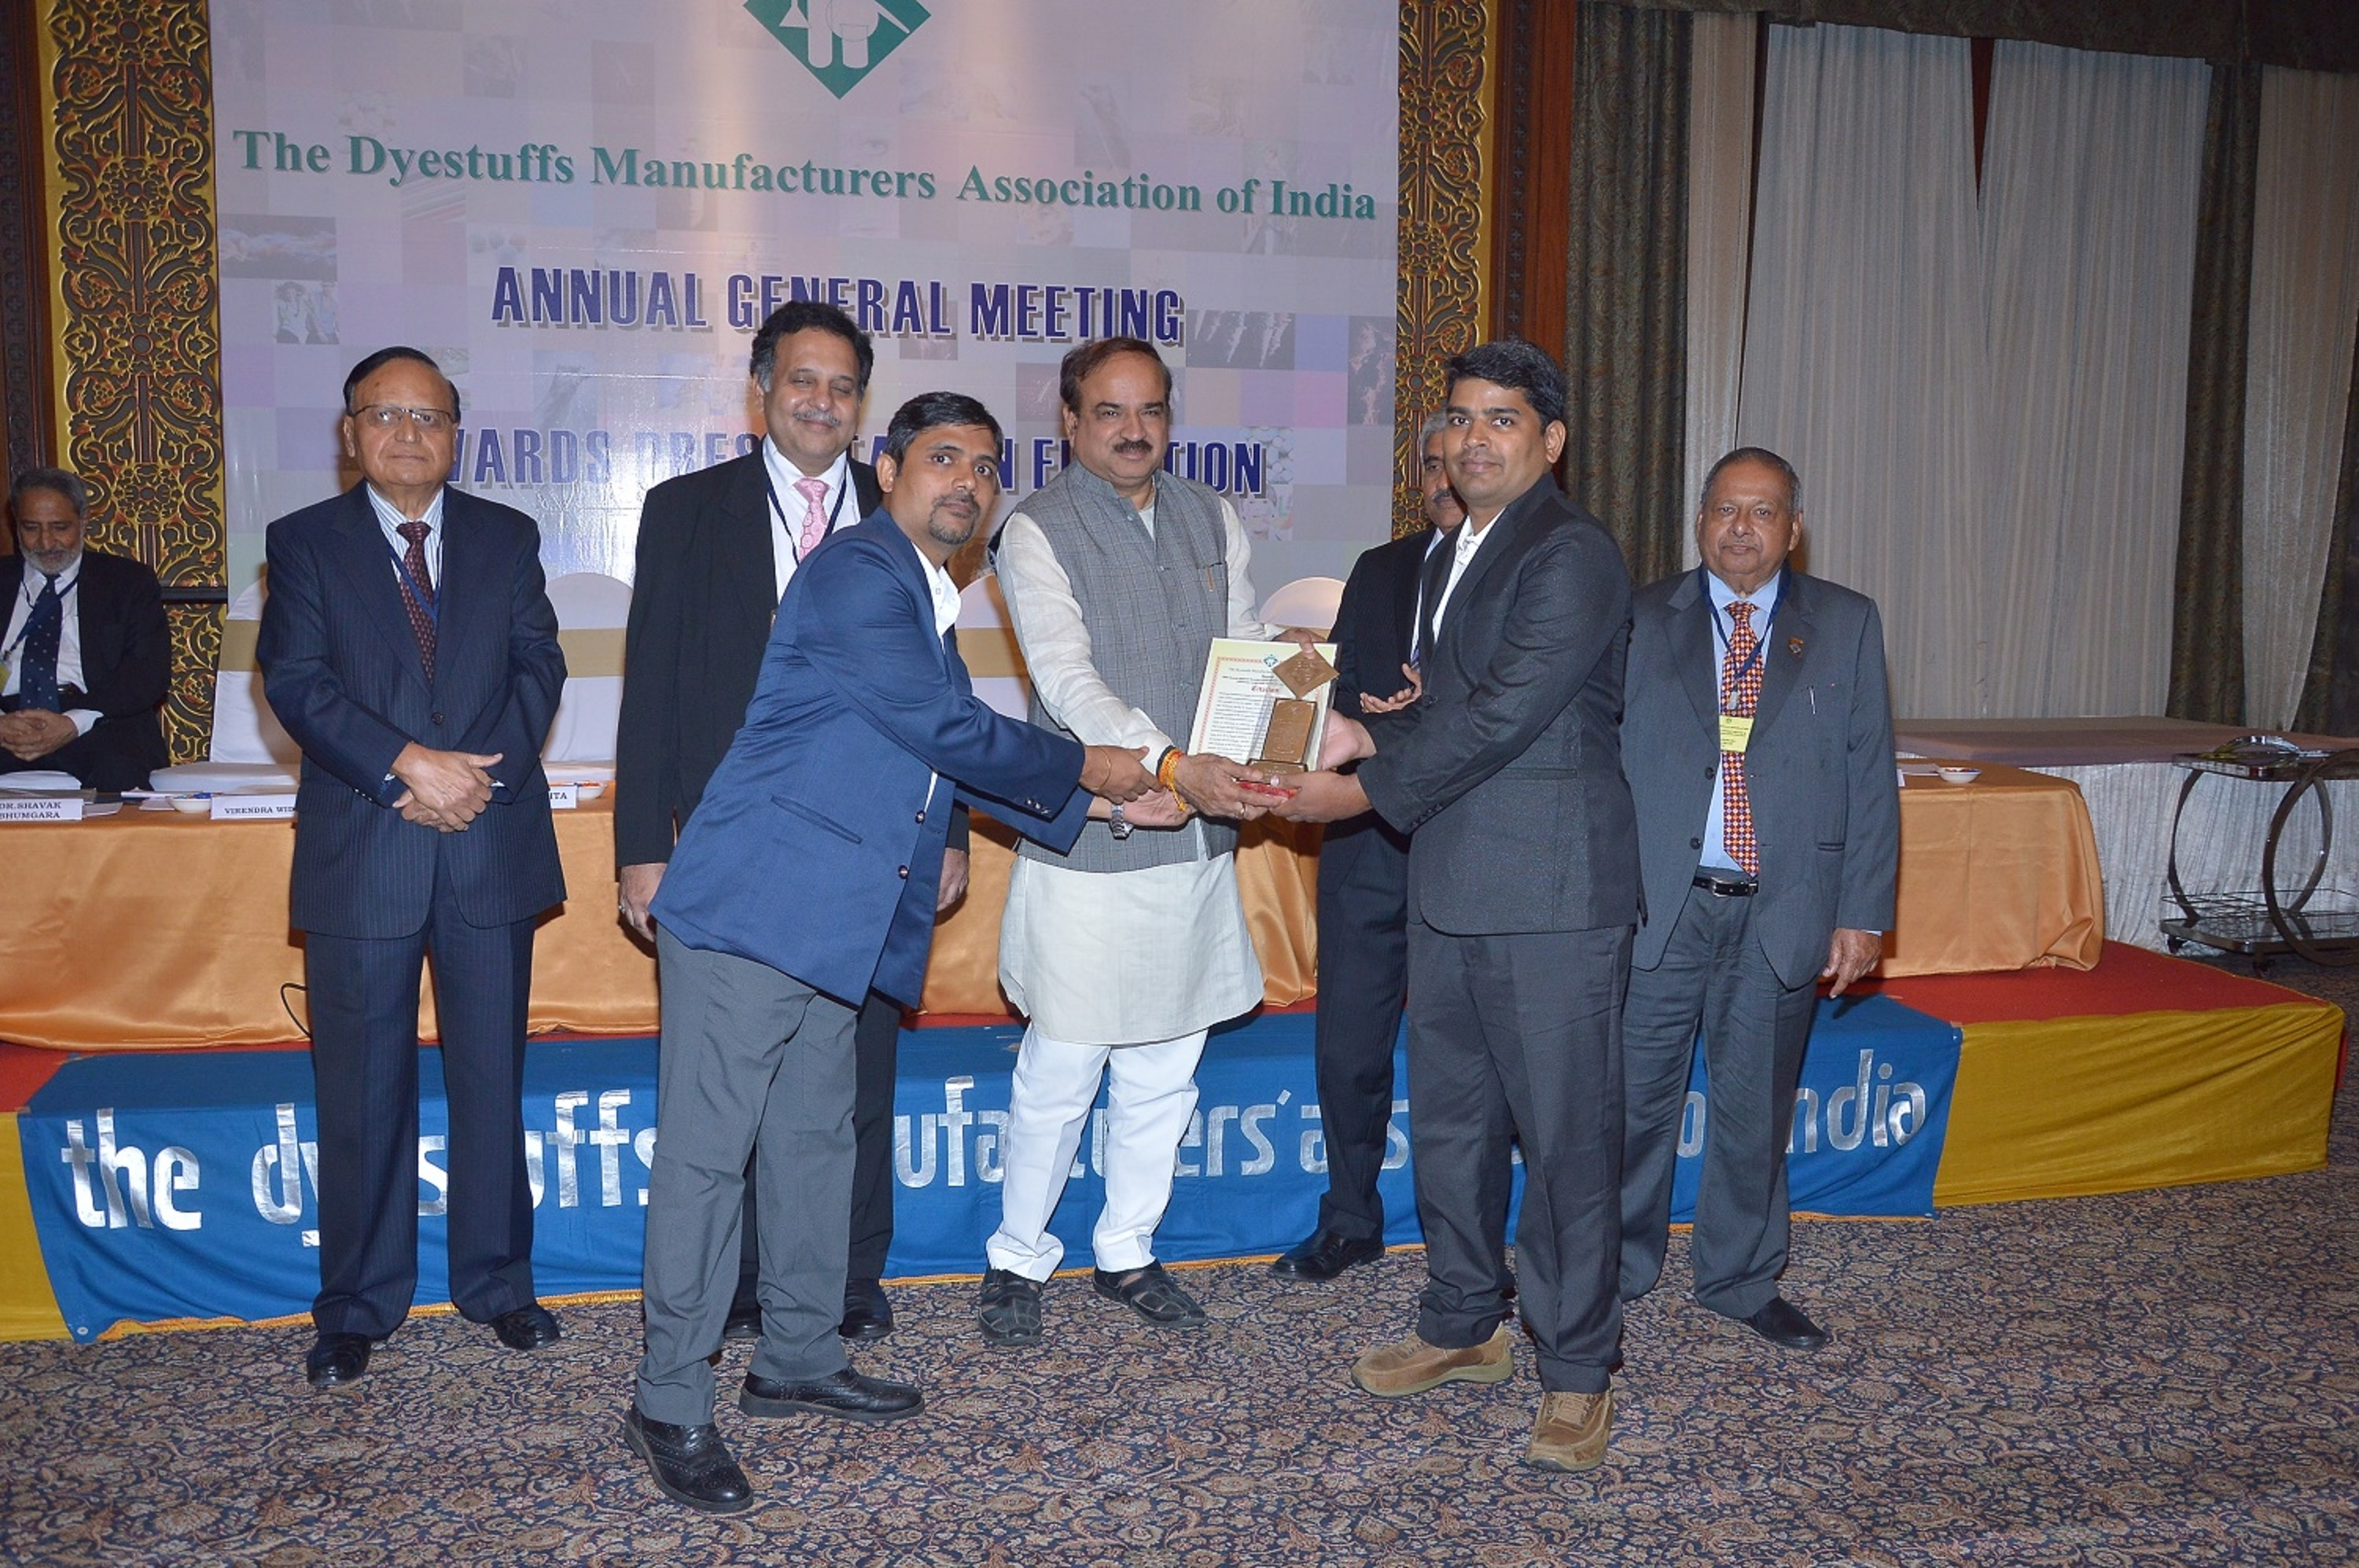 Huntsman Textile Effects wins Dyestuff Manufacturers'Association of India Award